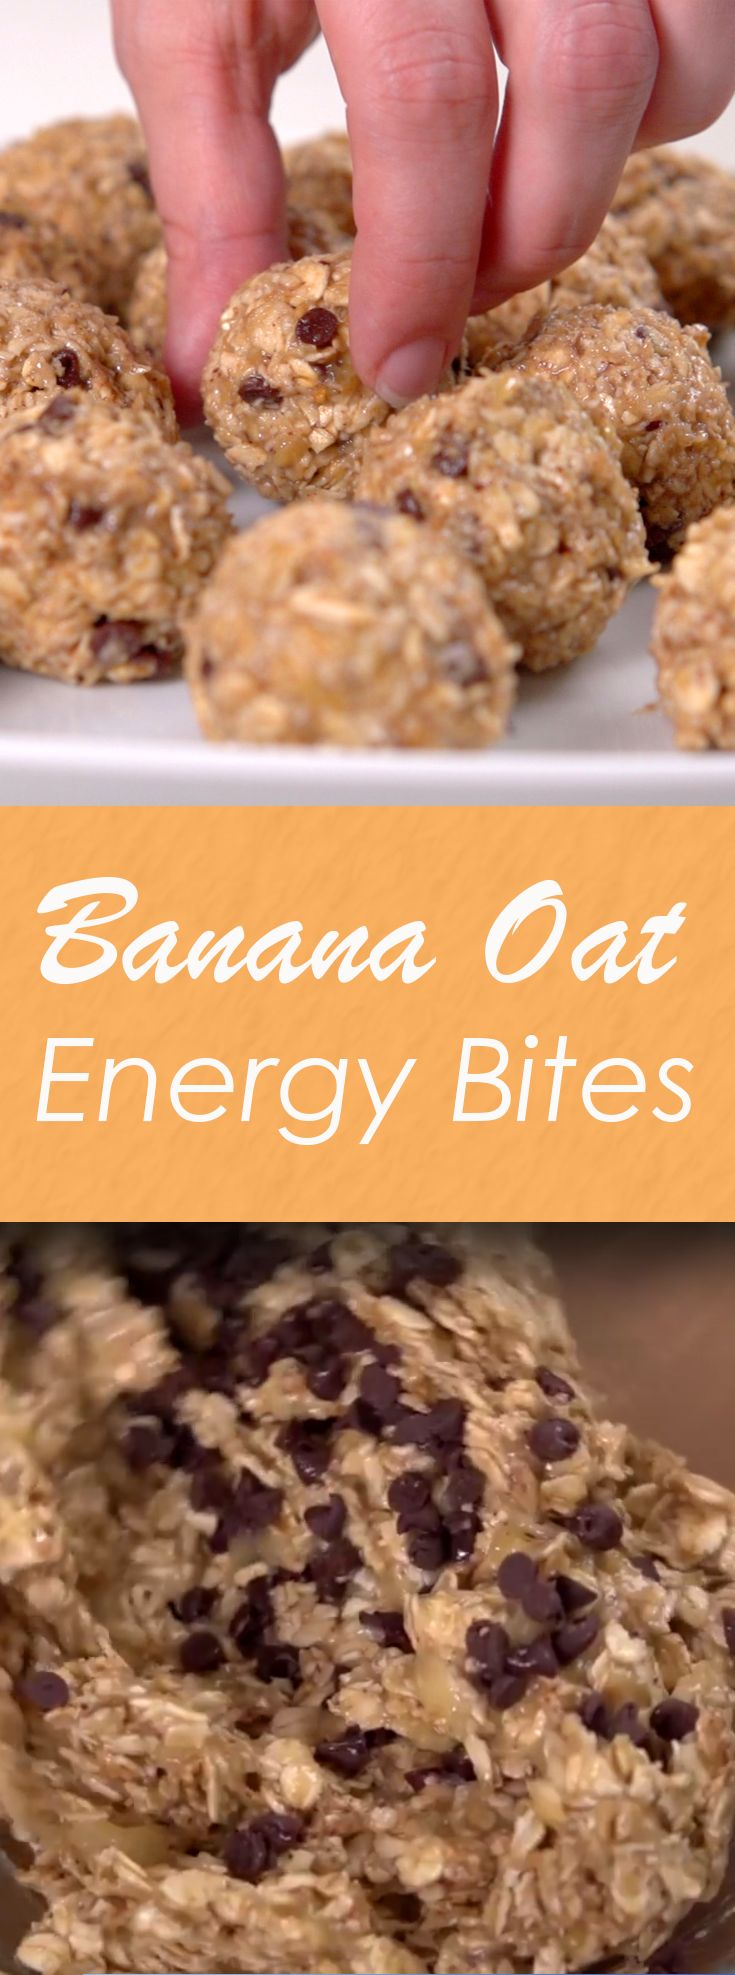 Banana Oat Energy Bites | Here's the perfect on-the-go snack. Packed with healthy ingredients like oats, bananas, almond butter, honey and cinnamon--and a sprinkle of chocolate--it's great for a quick breakfast or midday boost.  Bonus!  They are super easy to make and can me made ahead of time! Click for the video and recipe. #healthysnacks                                                                                                                                                     More